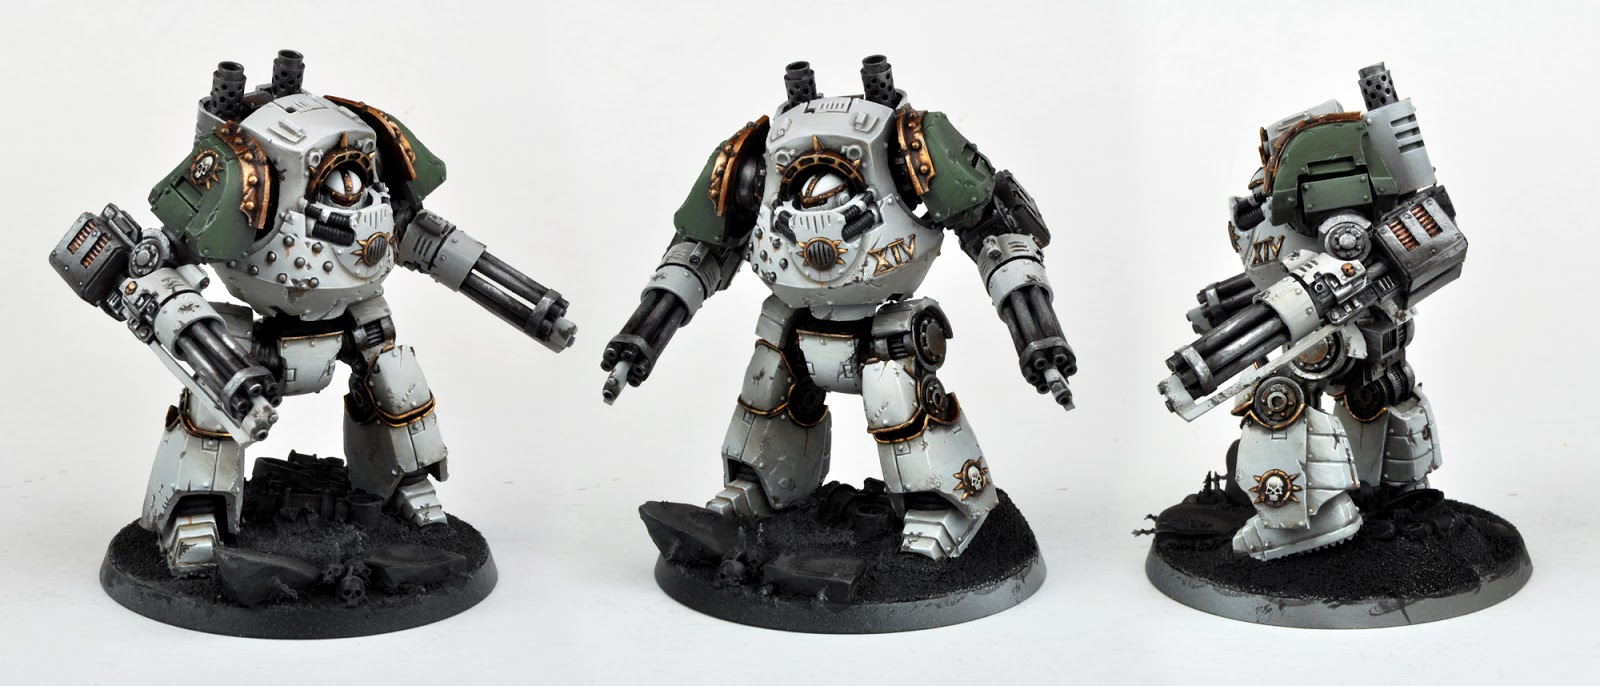 Death Guard Horus Heresy Horus Heresy The Death Guard